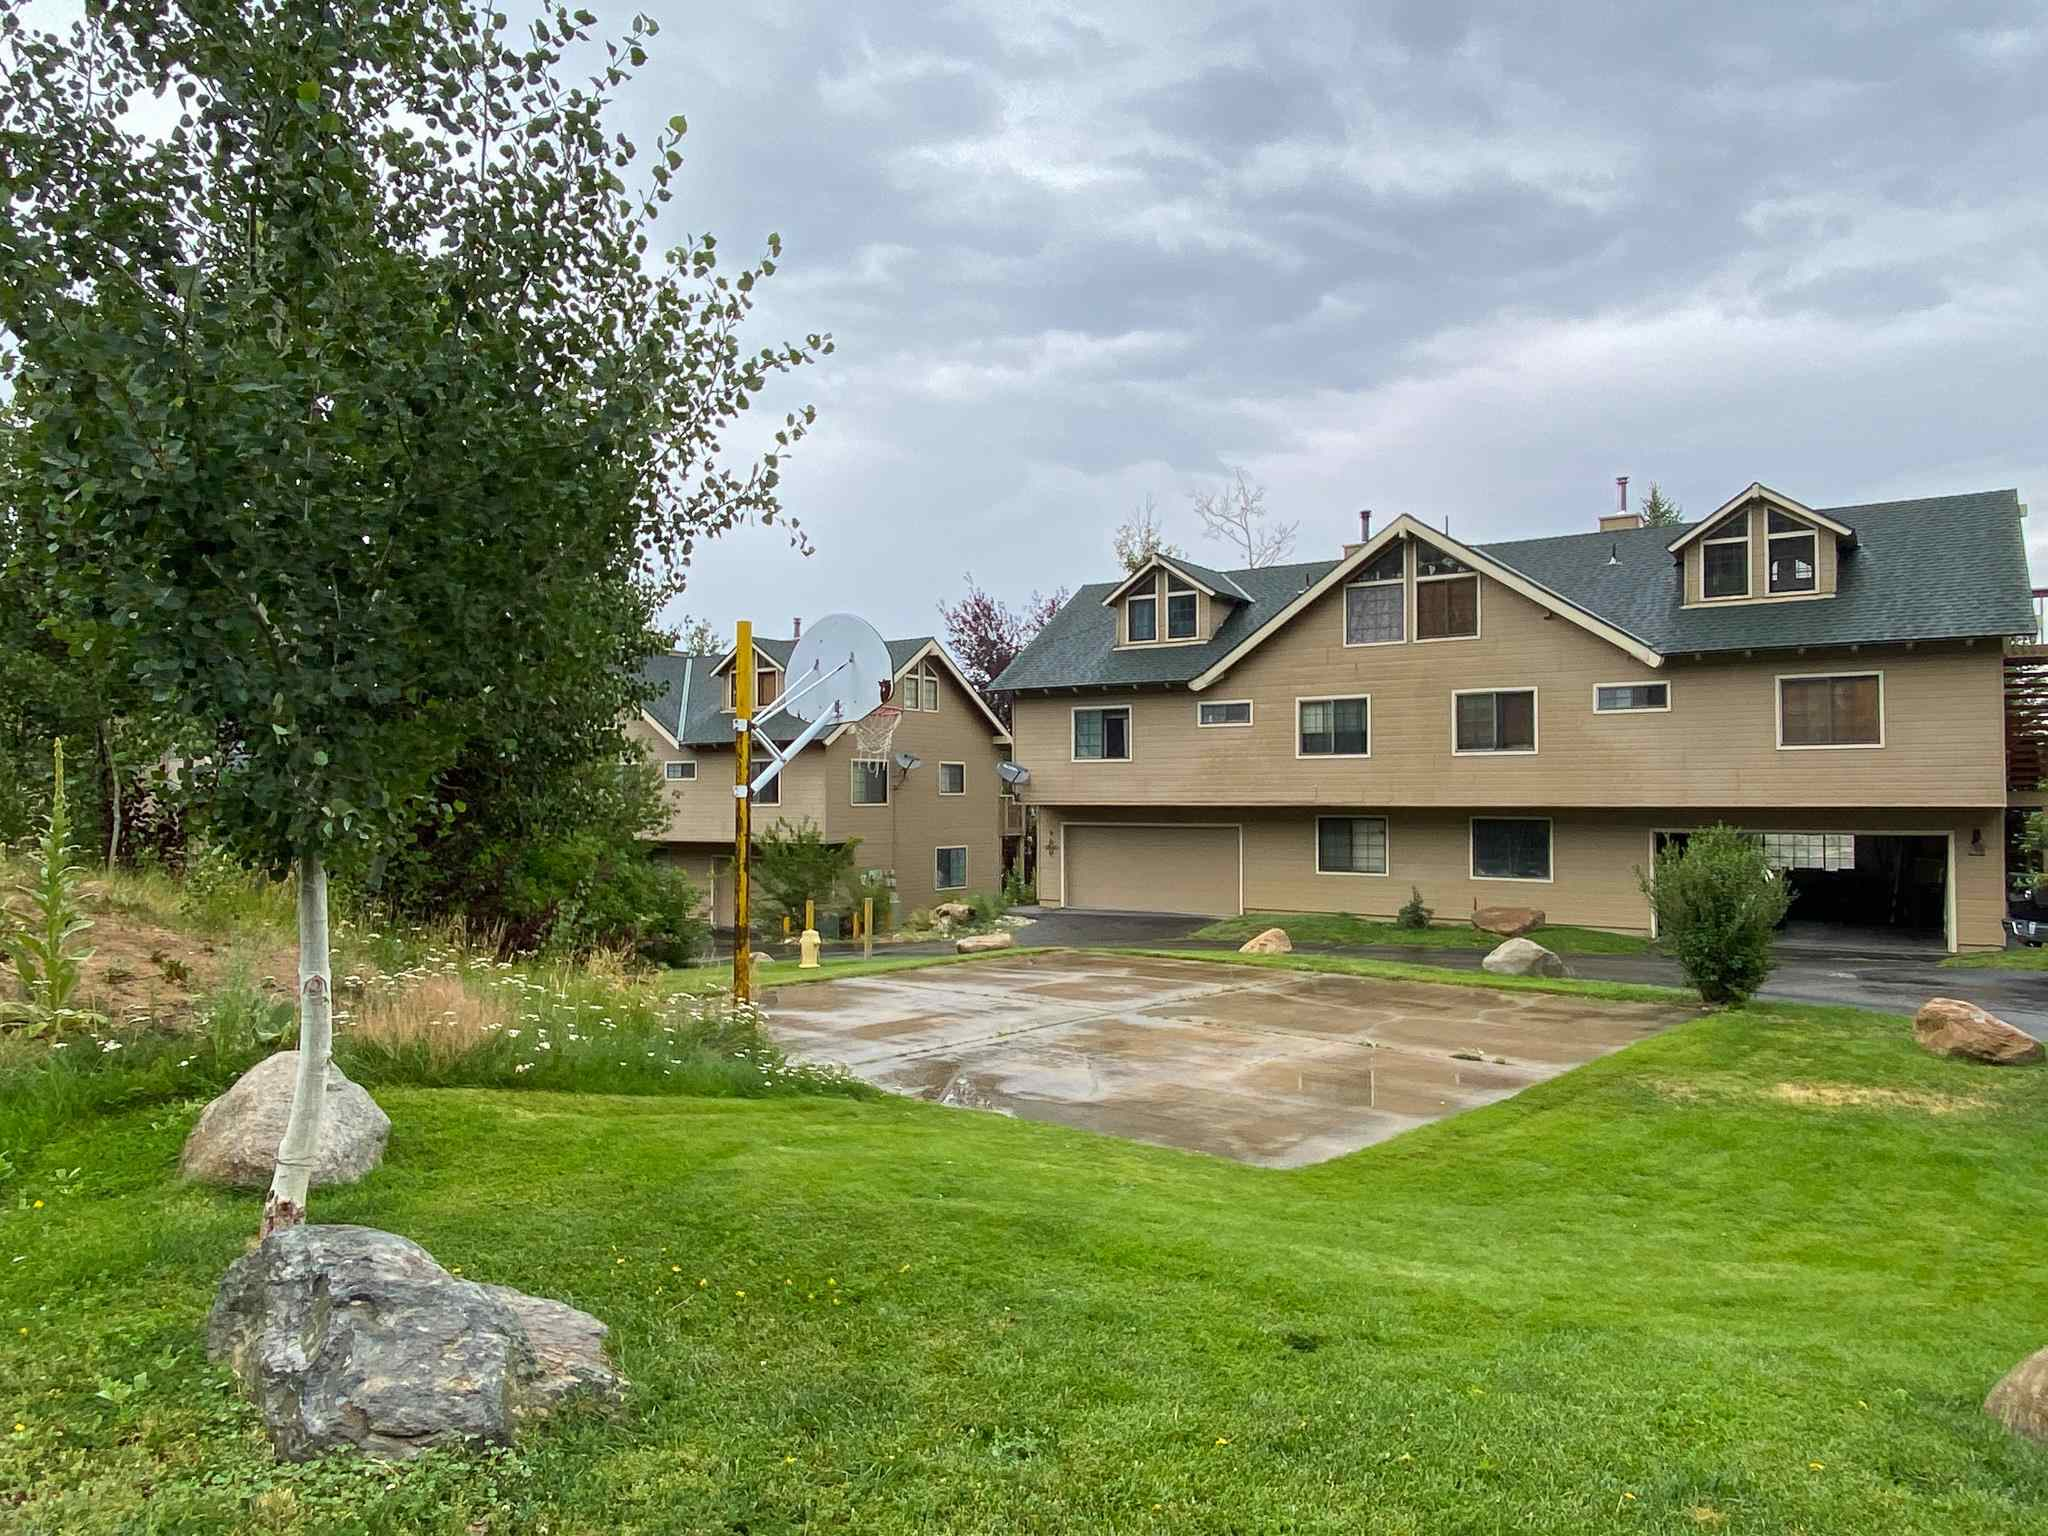 """Perfectly positioned just off of HWY 395 and only 15 minutes to Mammoth Lakes, close proximity to Crowley Lake and the park.   This end unit Townhome would be ideal for a Mammoth local or 2nd homeowner searching for views, space and tranquility! The Association takes pride in their Landscaped lawns and flowers overlooking Crowley Lake and the Eastern Sierra.  Enjoy a sunset and privacy while sitting on an oversized deck . Entertaining has never been easier or more enjoyable with the large open floor plan, wet bar, vaulted ceilings and 3 levels. The main entry level offers you a laundry room with a sink and storage. The attached 2 car garage has a bonus """"office"""" with a window and plenty of space to call this extra room whatever you want. Along with 2 cars in the garage, the driveway will also accommodate 2 cars.  The 2nd level will offer a large dining area, kitchen, pellet stove and a well designed living room with a wet bar. In addition, the 2nd level has a full bathroom and a bedroom.  The spacious 3rd level hosts an oversized primary bedroom and bathroom with expanded closets and a walk-in closet and custom closet system installed.  Plenty of room on the 3rd level for an office or reading room. This level also has a convenient exterior staircase.  Views of Crowley Lake from both bedrooms and primary bathroom.  Views of the Sierra from the deck.  The main entrance to the Townhome is a favorite for this complex as it has privacy from the backside and a landscaped yard that other units do not have.  This is a must see!"""